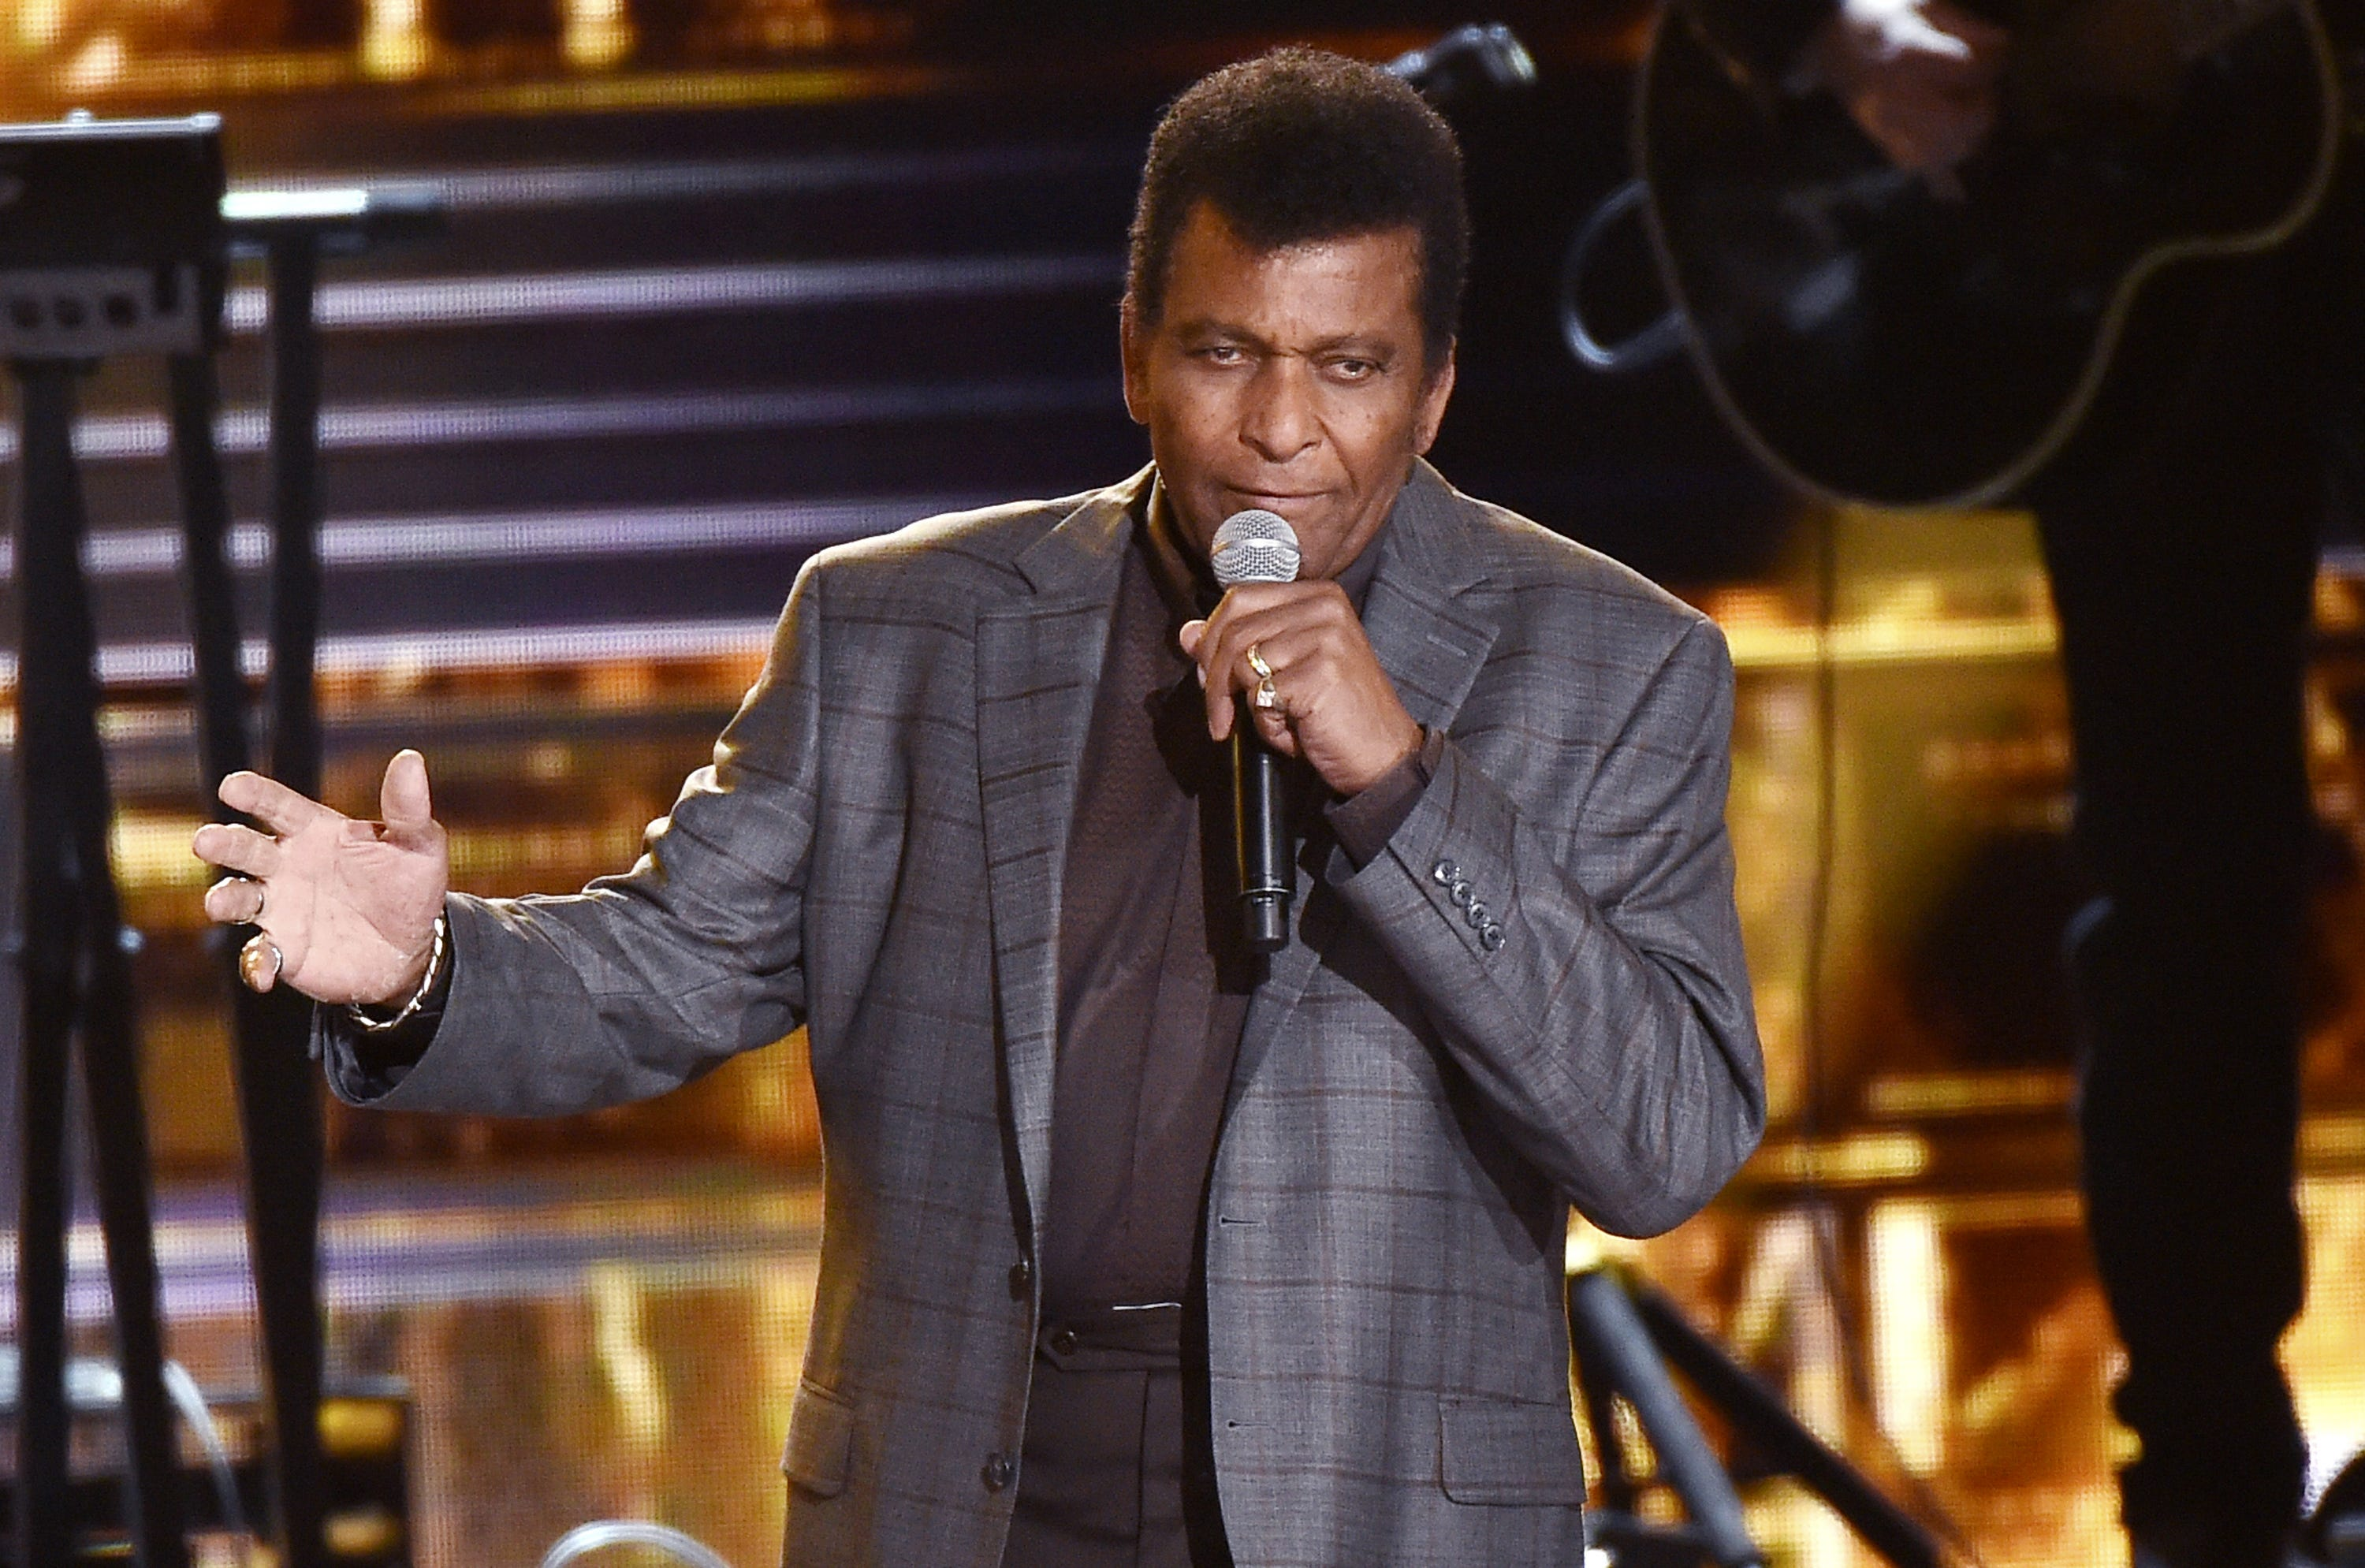 Charley Pride to receive CMA s Lifetime Achievement Award